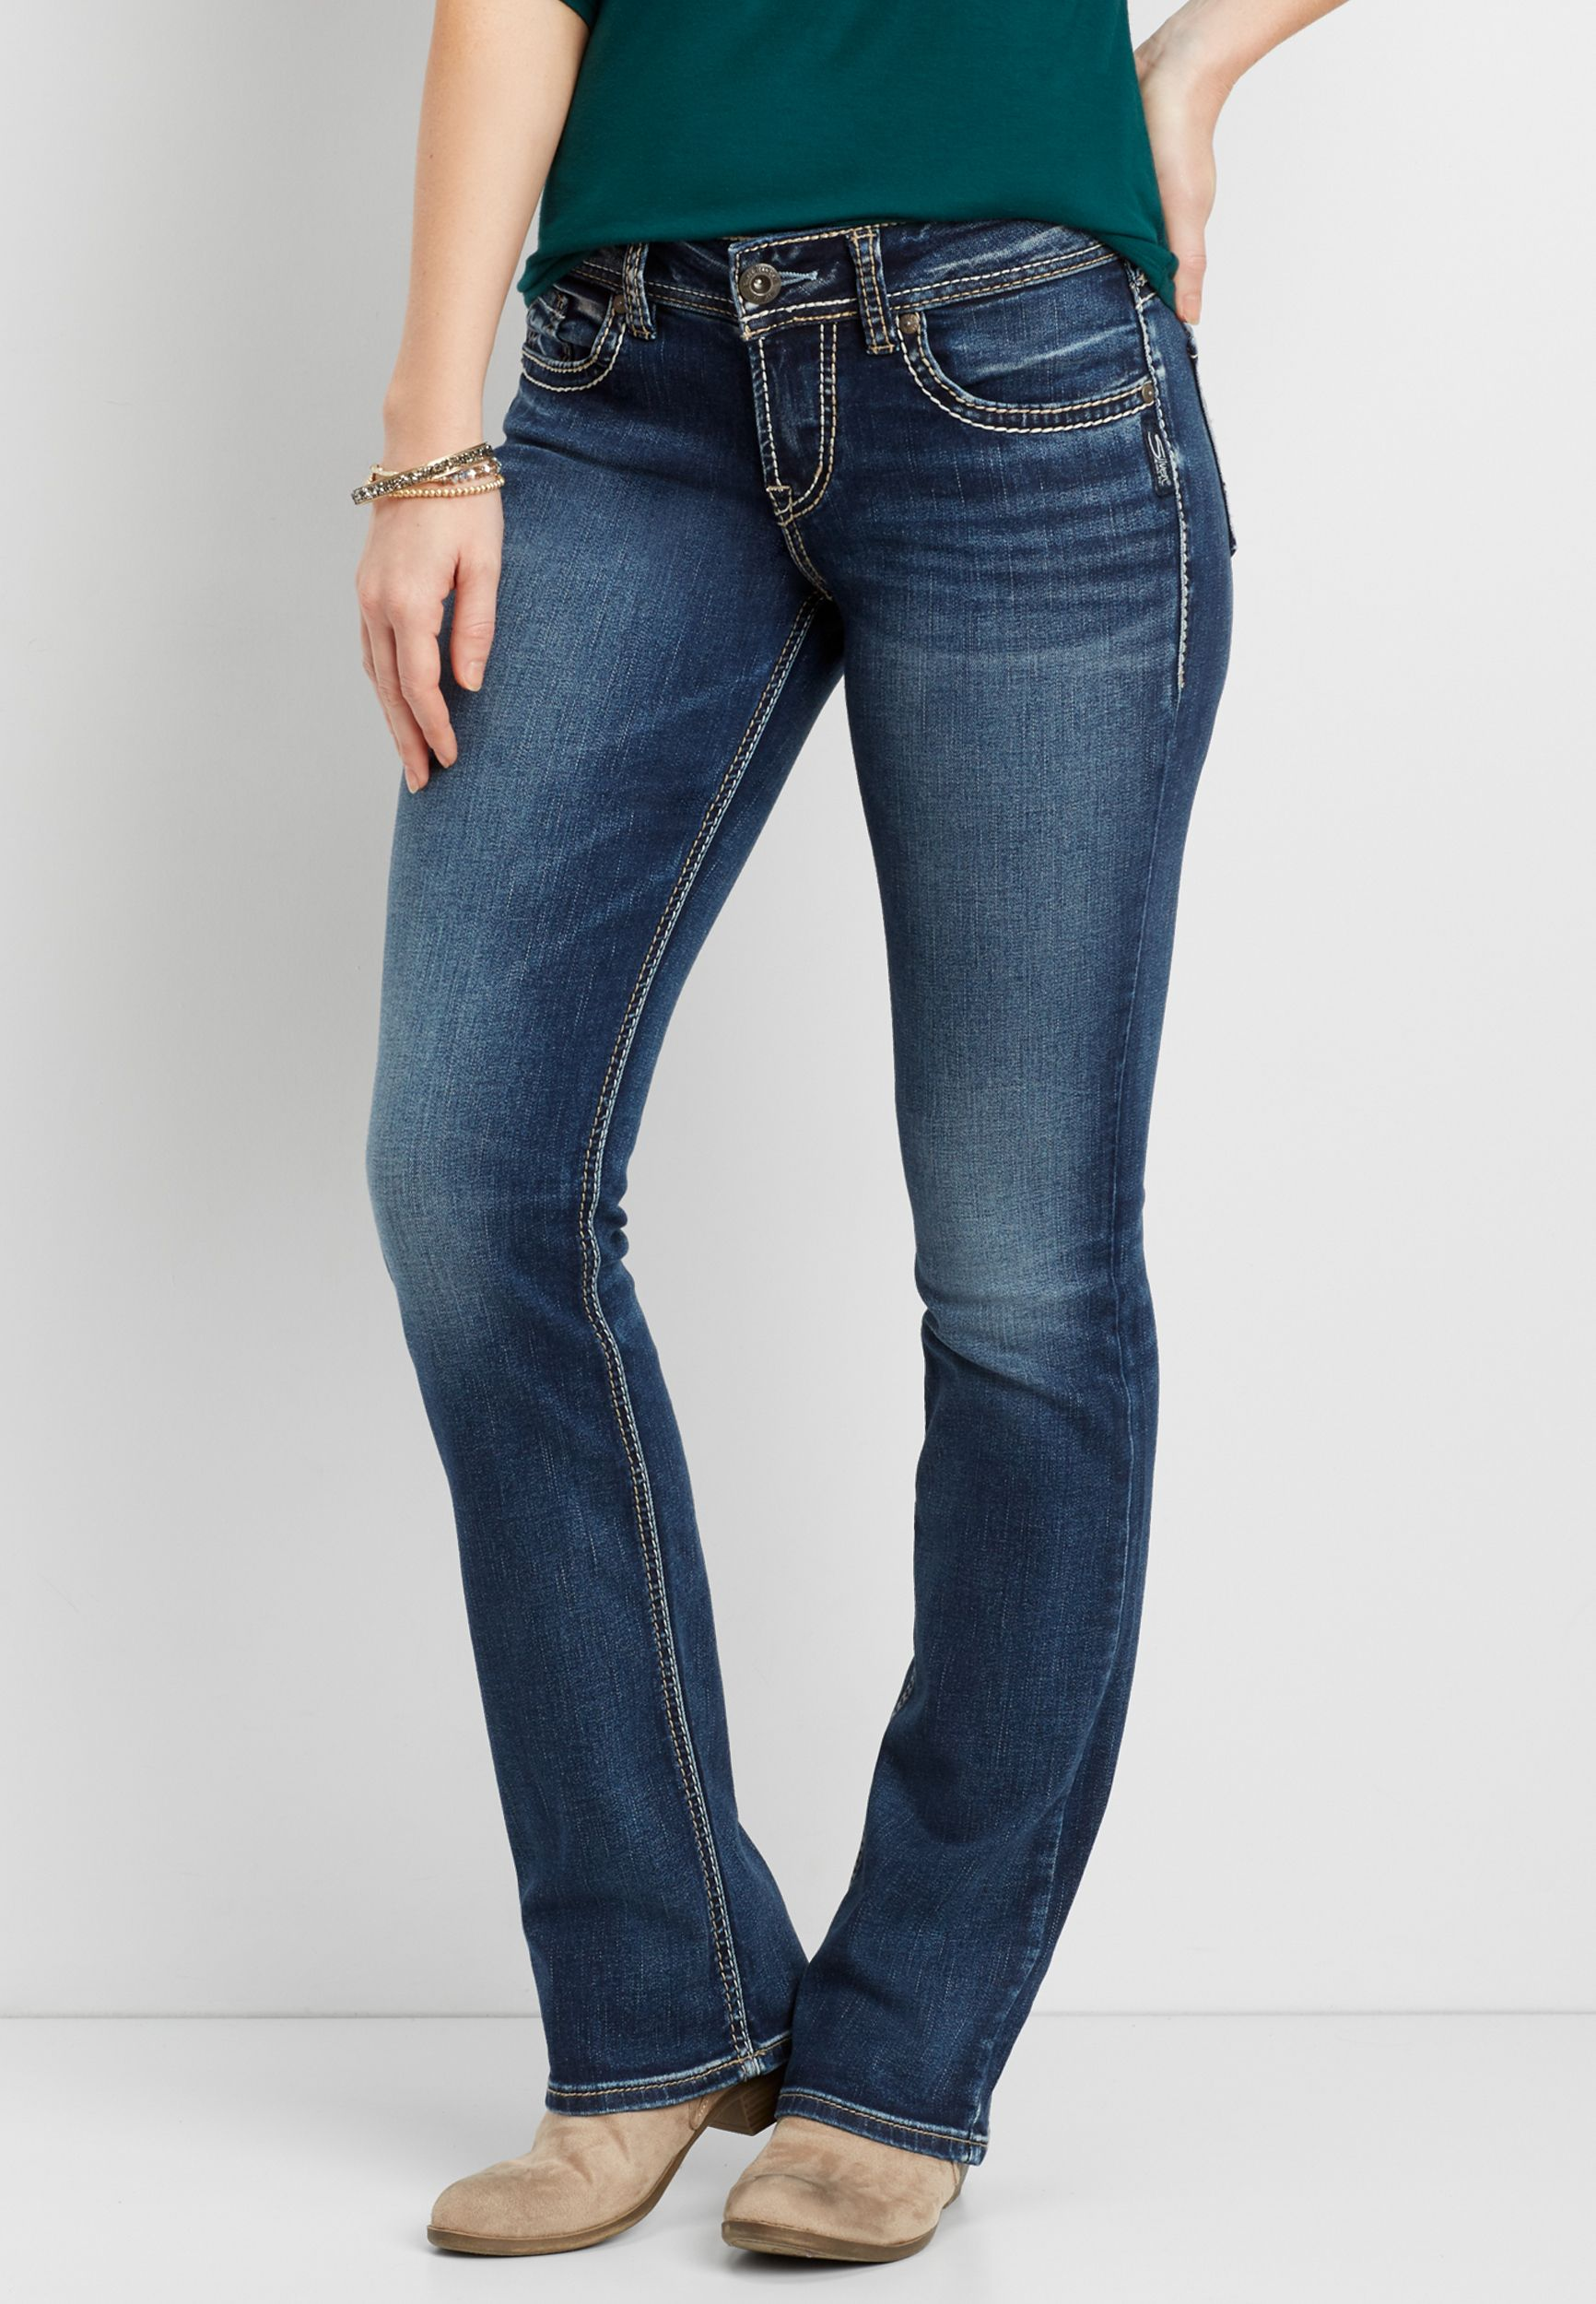 3a70eb61 Silver Jeans Co.® Suki slim boot jeans with pieced back pockets (original  price, $89.00) available at #Maurices